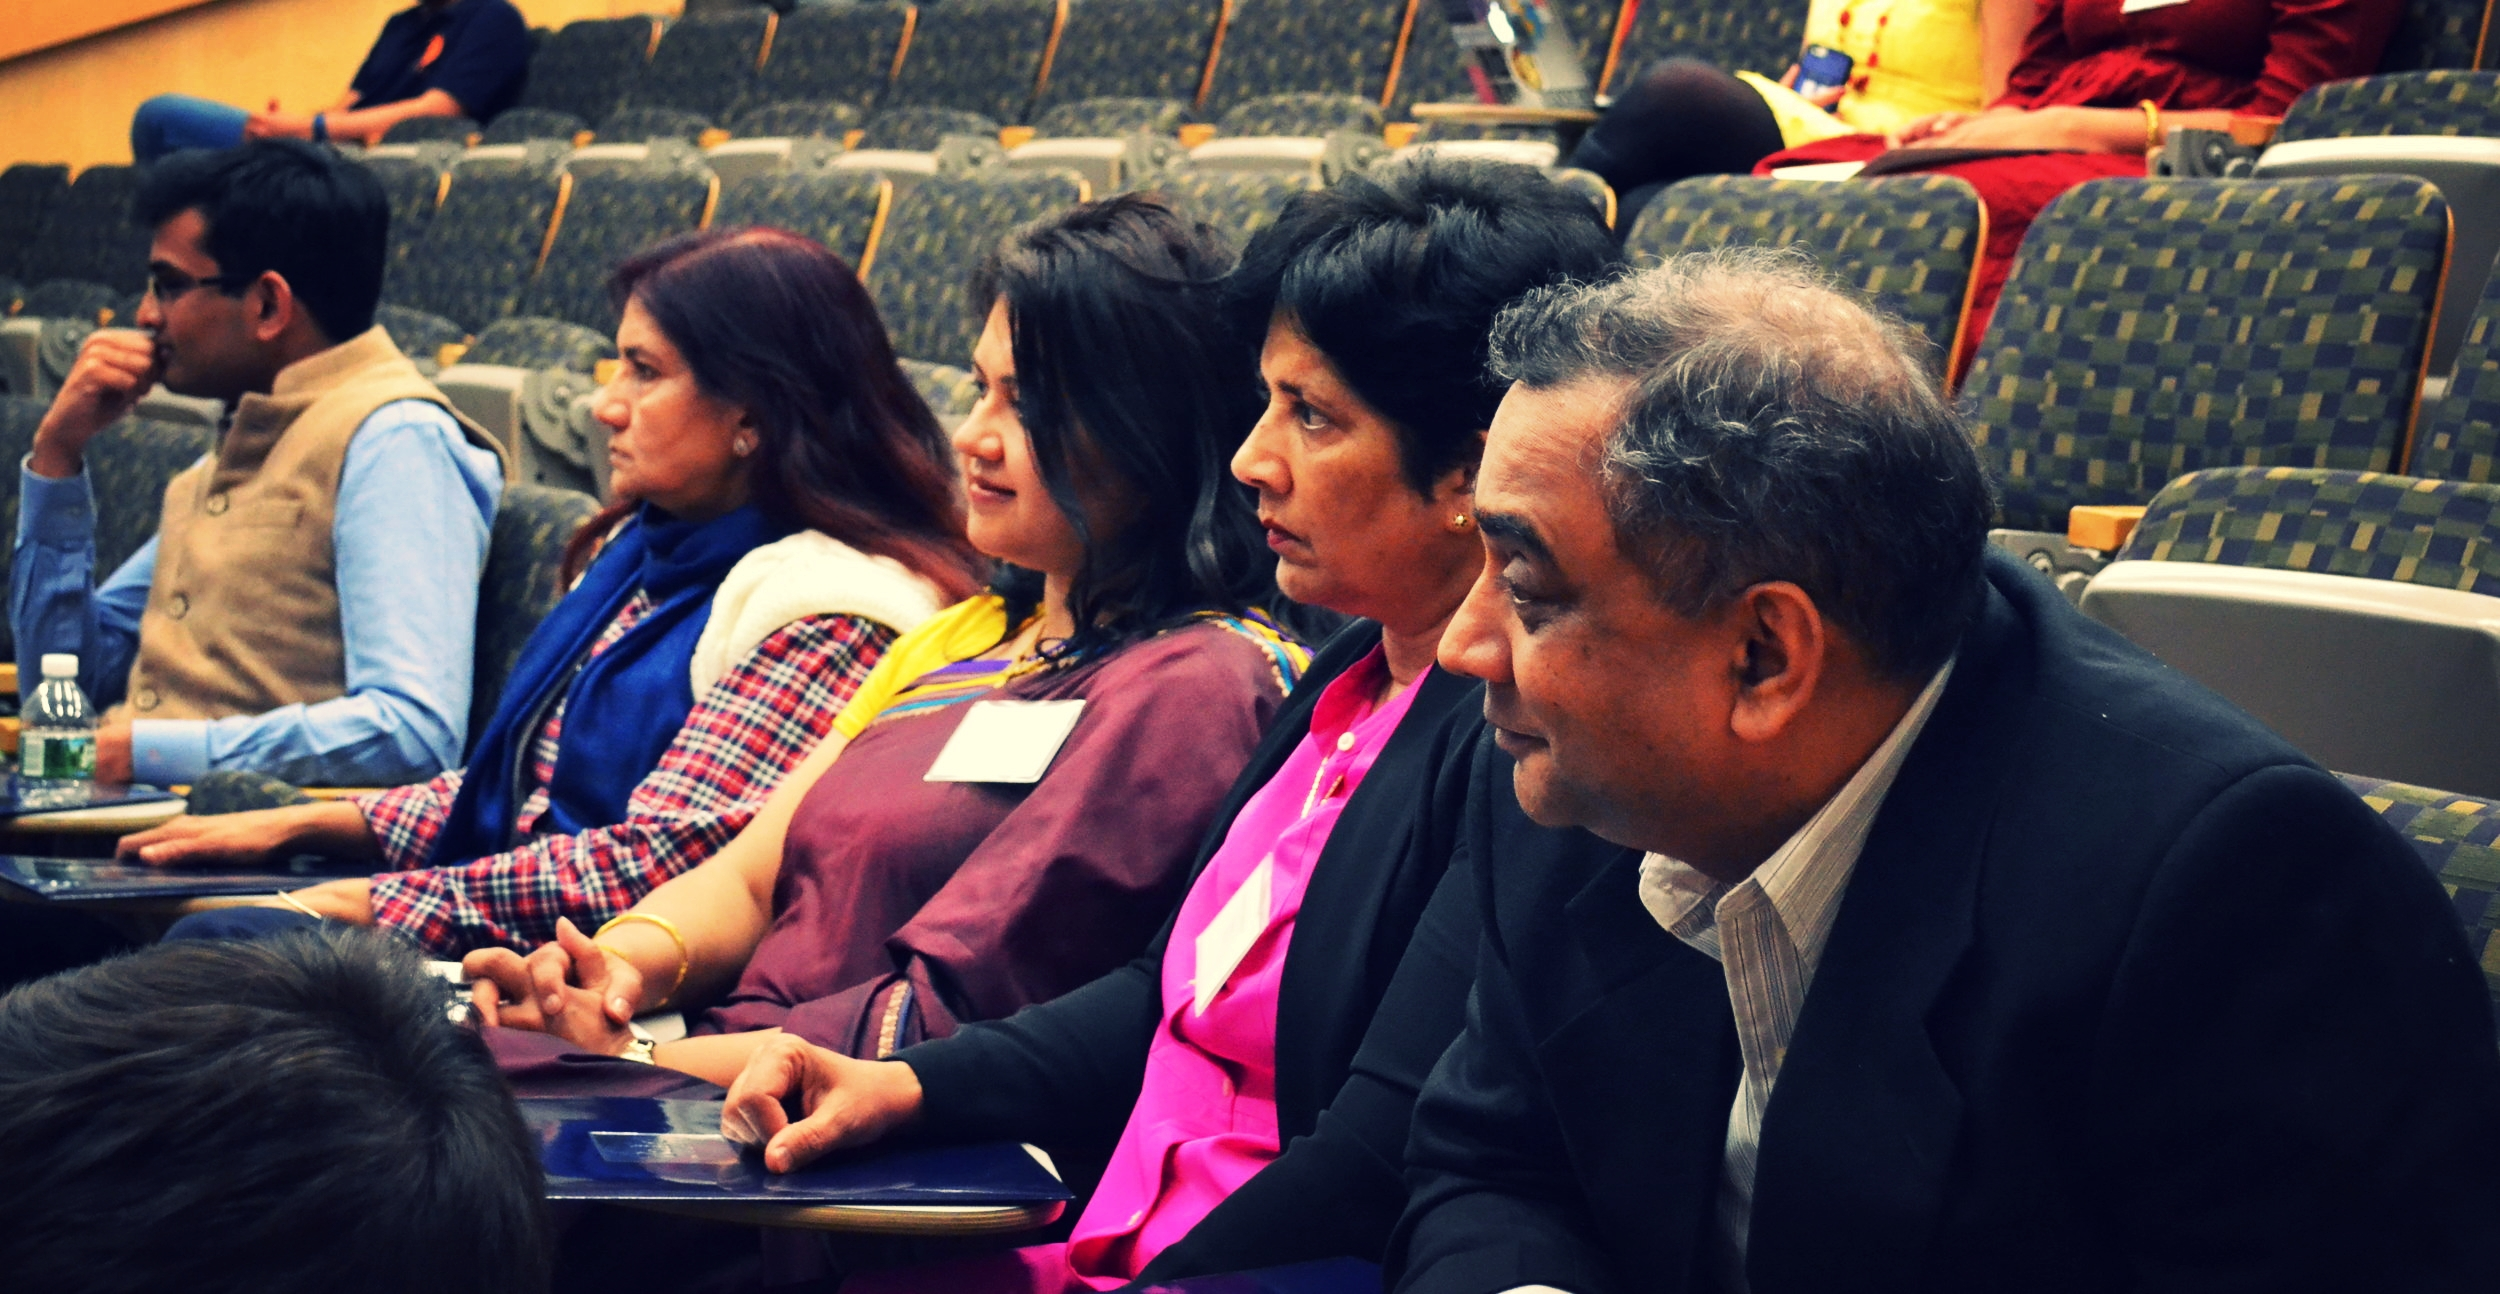 Our Judges: Shikhar Singh (Yale), Dr. Shaheen Parveen (Rutgers), Patrica Sabarwal (University of Kansas), Gyanam Mahajan (UCLA), Anand Dwivedi (UPenn) - in order from left to right